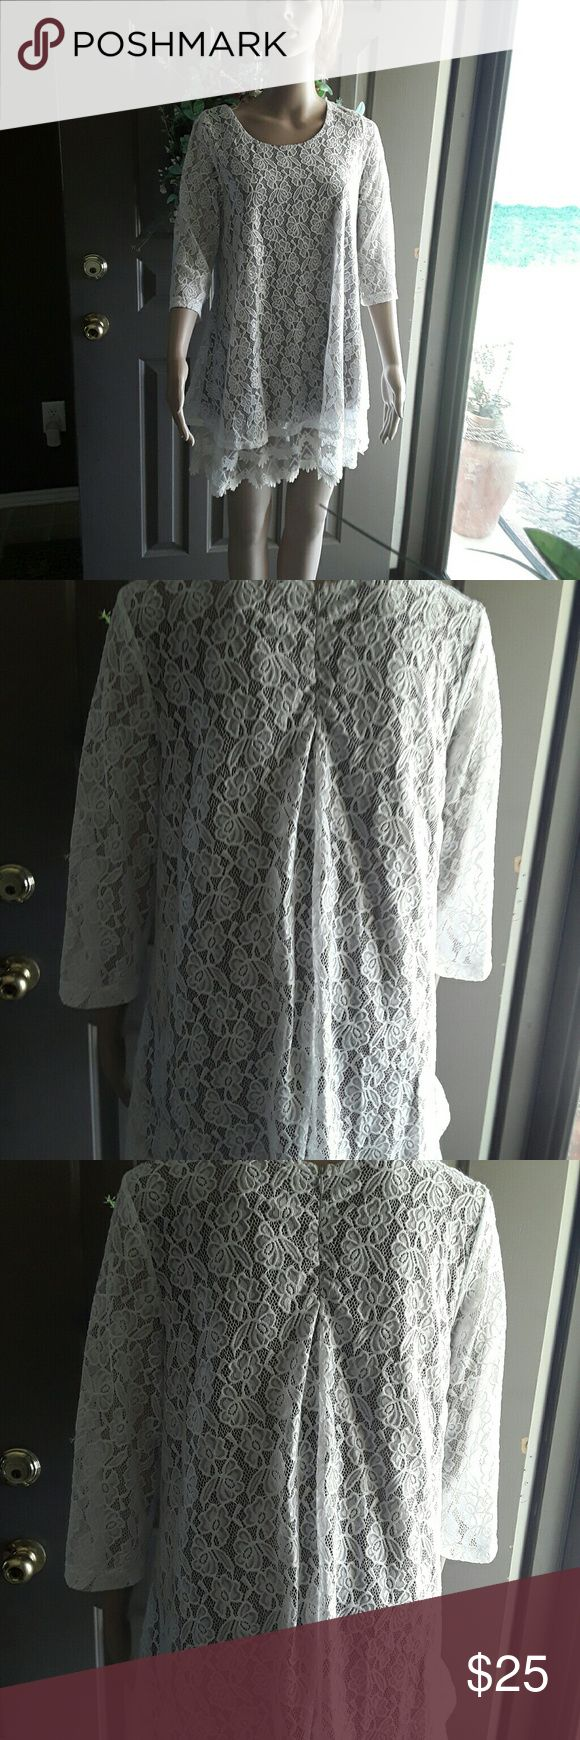 Lady Noiz two piece lace tunic A two piece beige lace tunic with a slip underneath and a lace tunic on top single piece Lady Noiz Tops Blouses